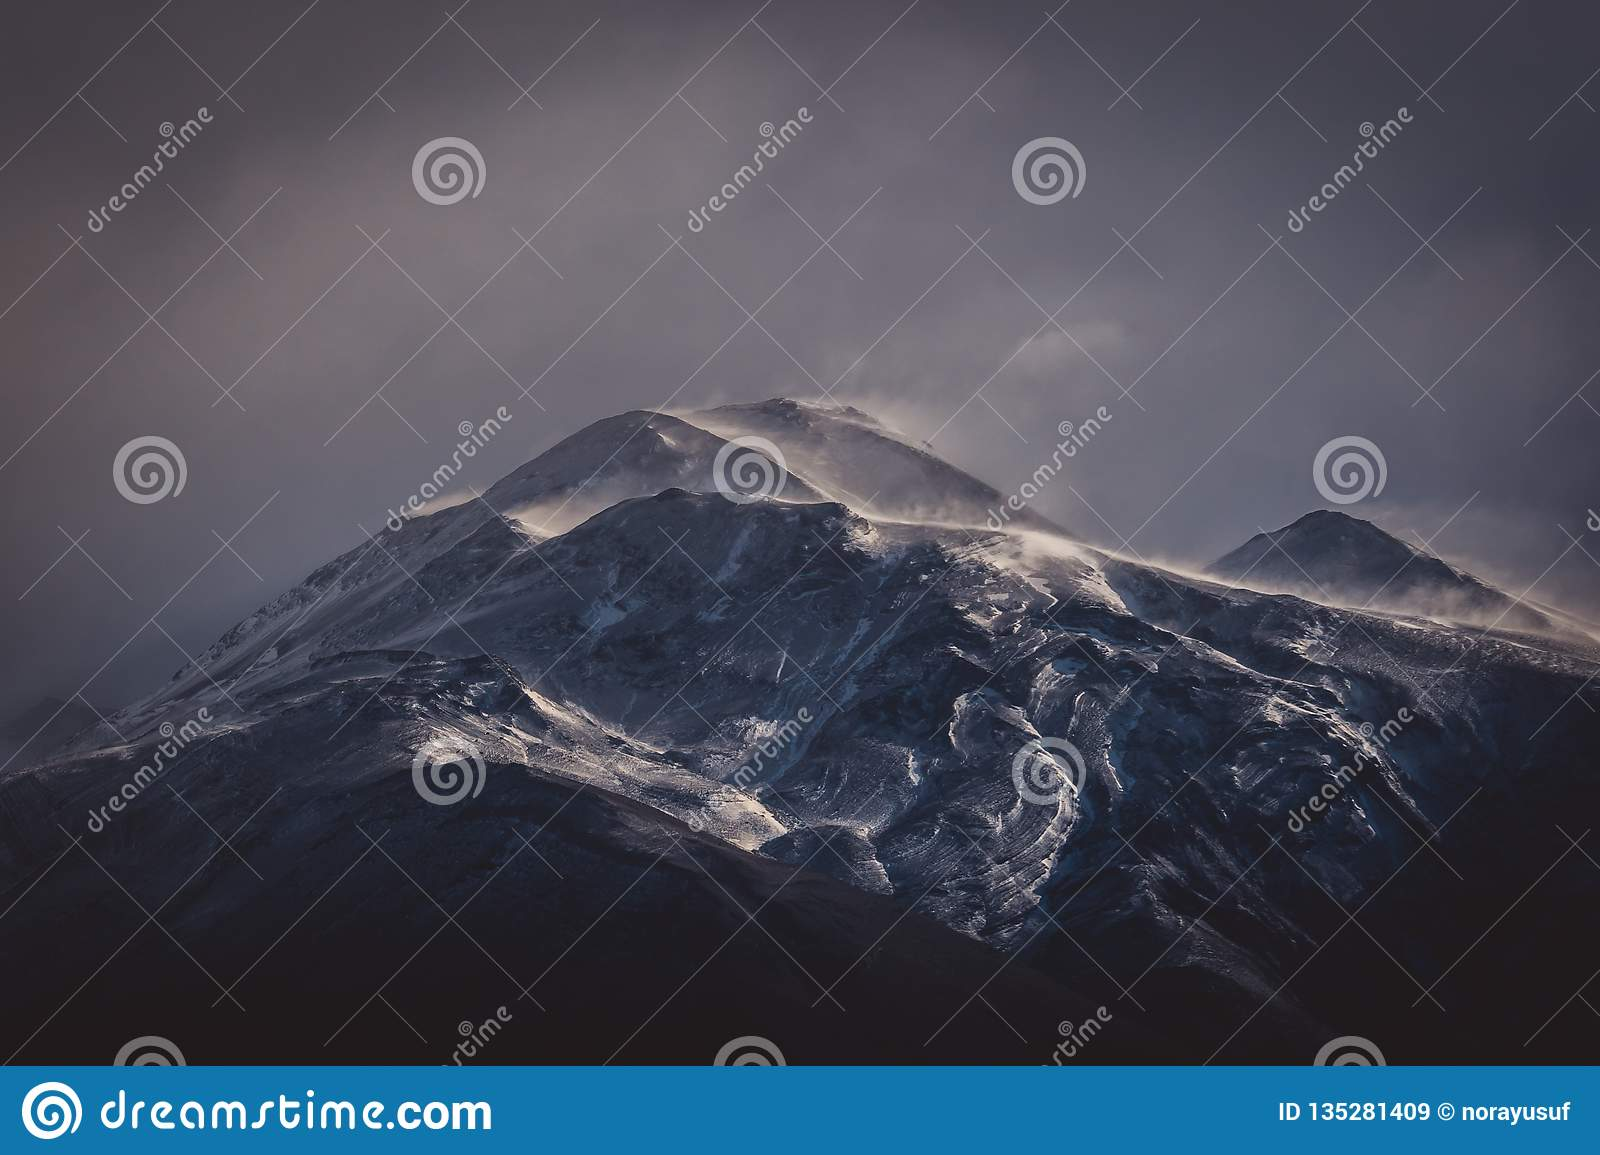 Cold grey clouds over a rugged mountain